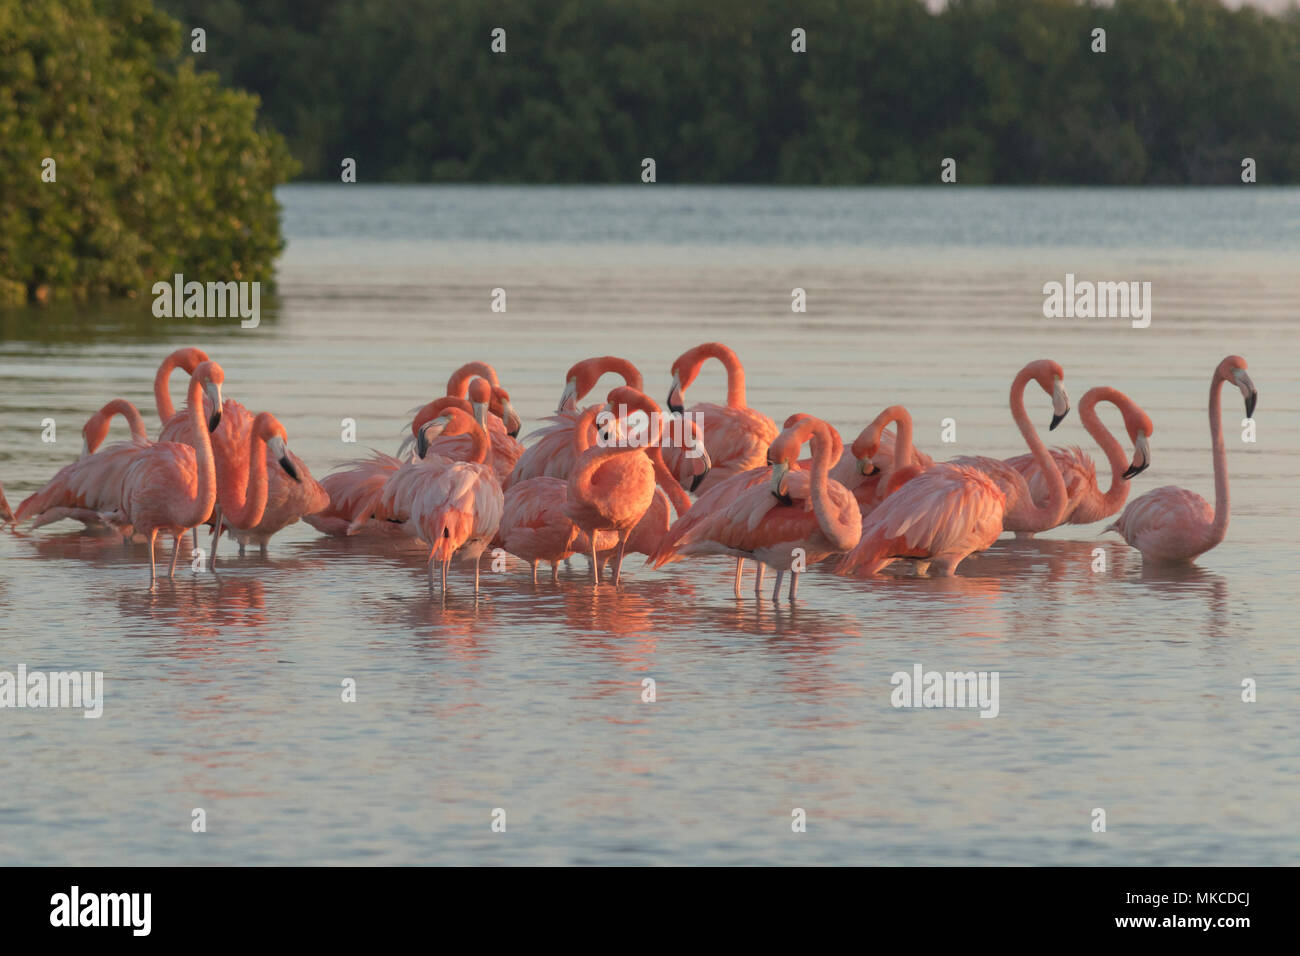 Pink flamingos family at dawn , they gather before setting off to start their day in the river - Stock Image